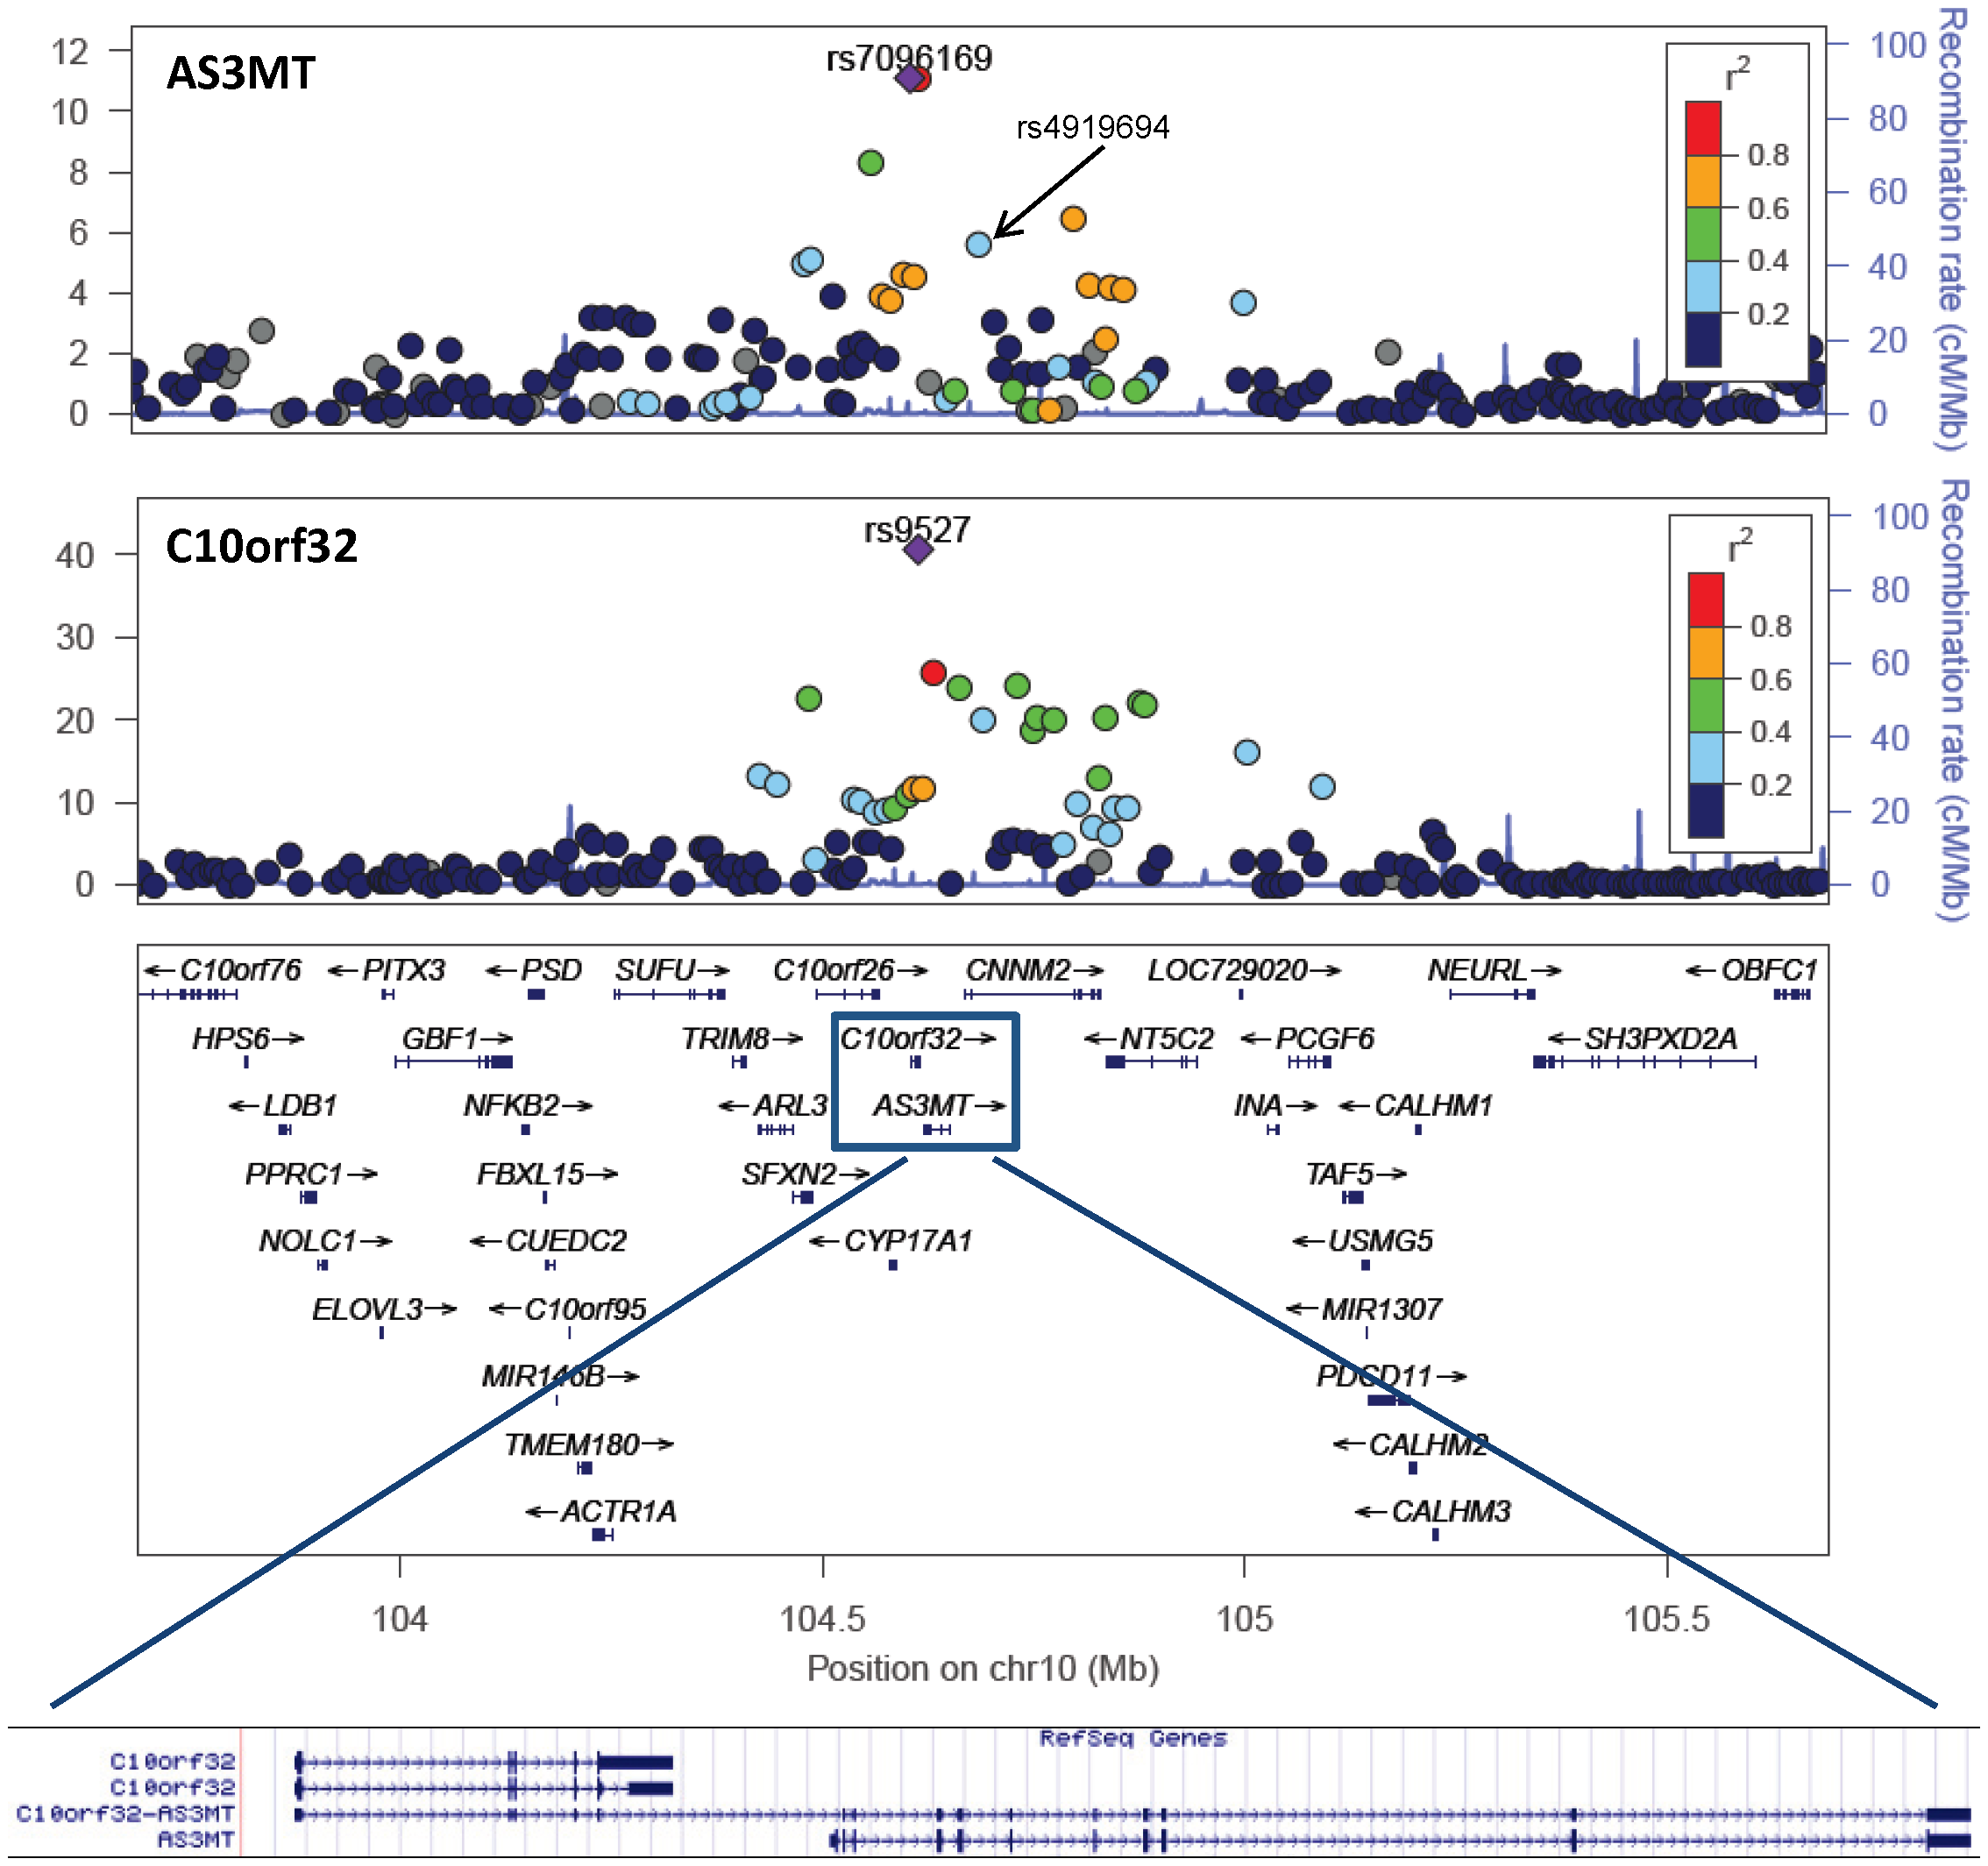 Variants in the 10q24.32 region are associated with transcript levels of AS3MT and C10orf32.